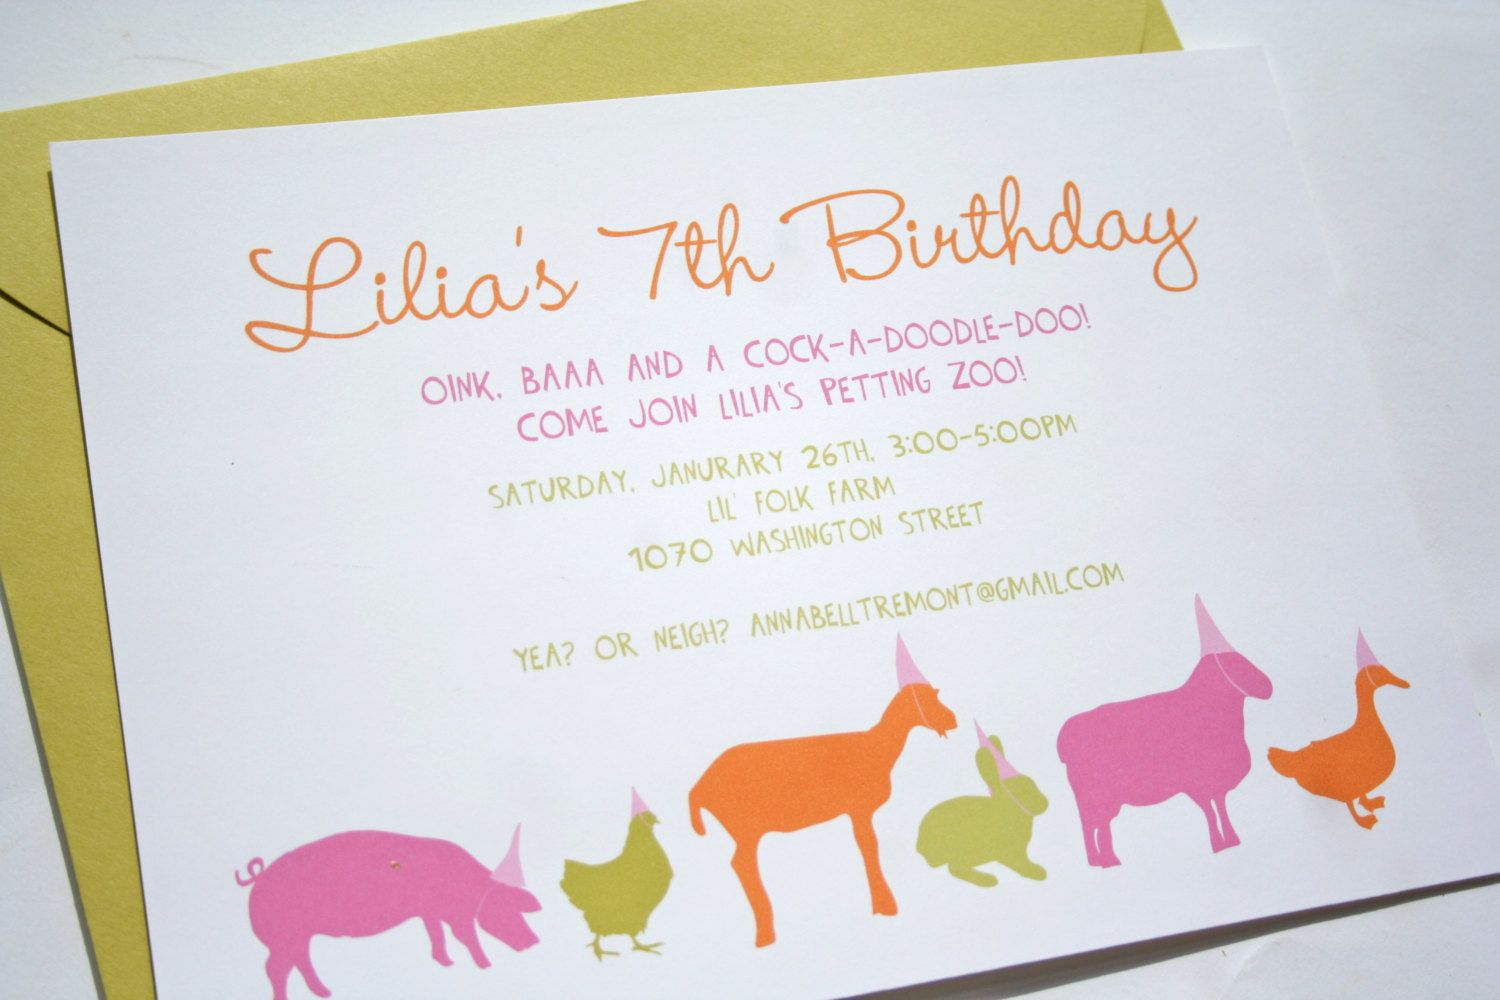 Petting Zoo Party Invitation in 3 Colorways by deepbluesea on Etsy ...